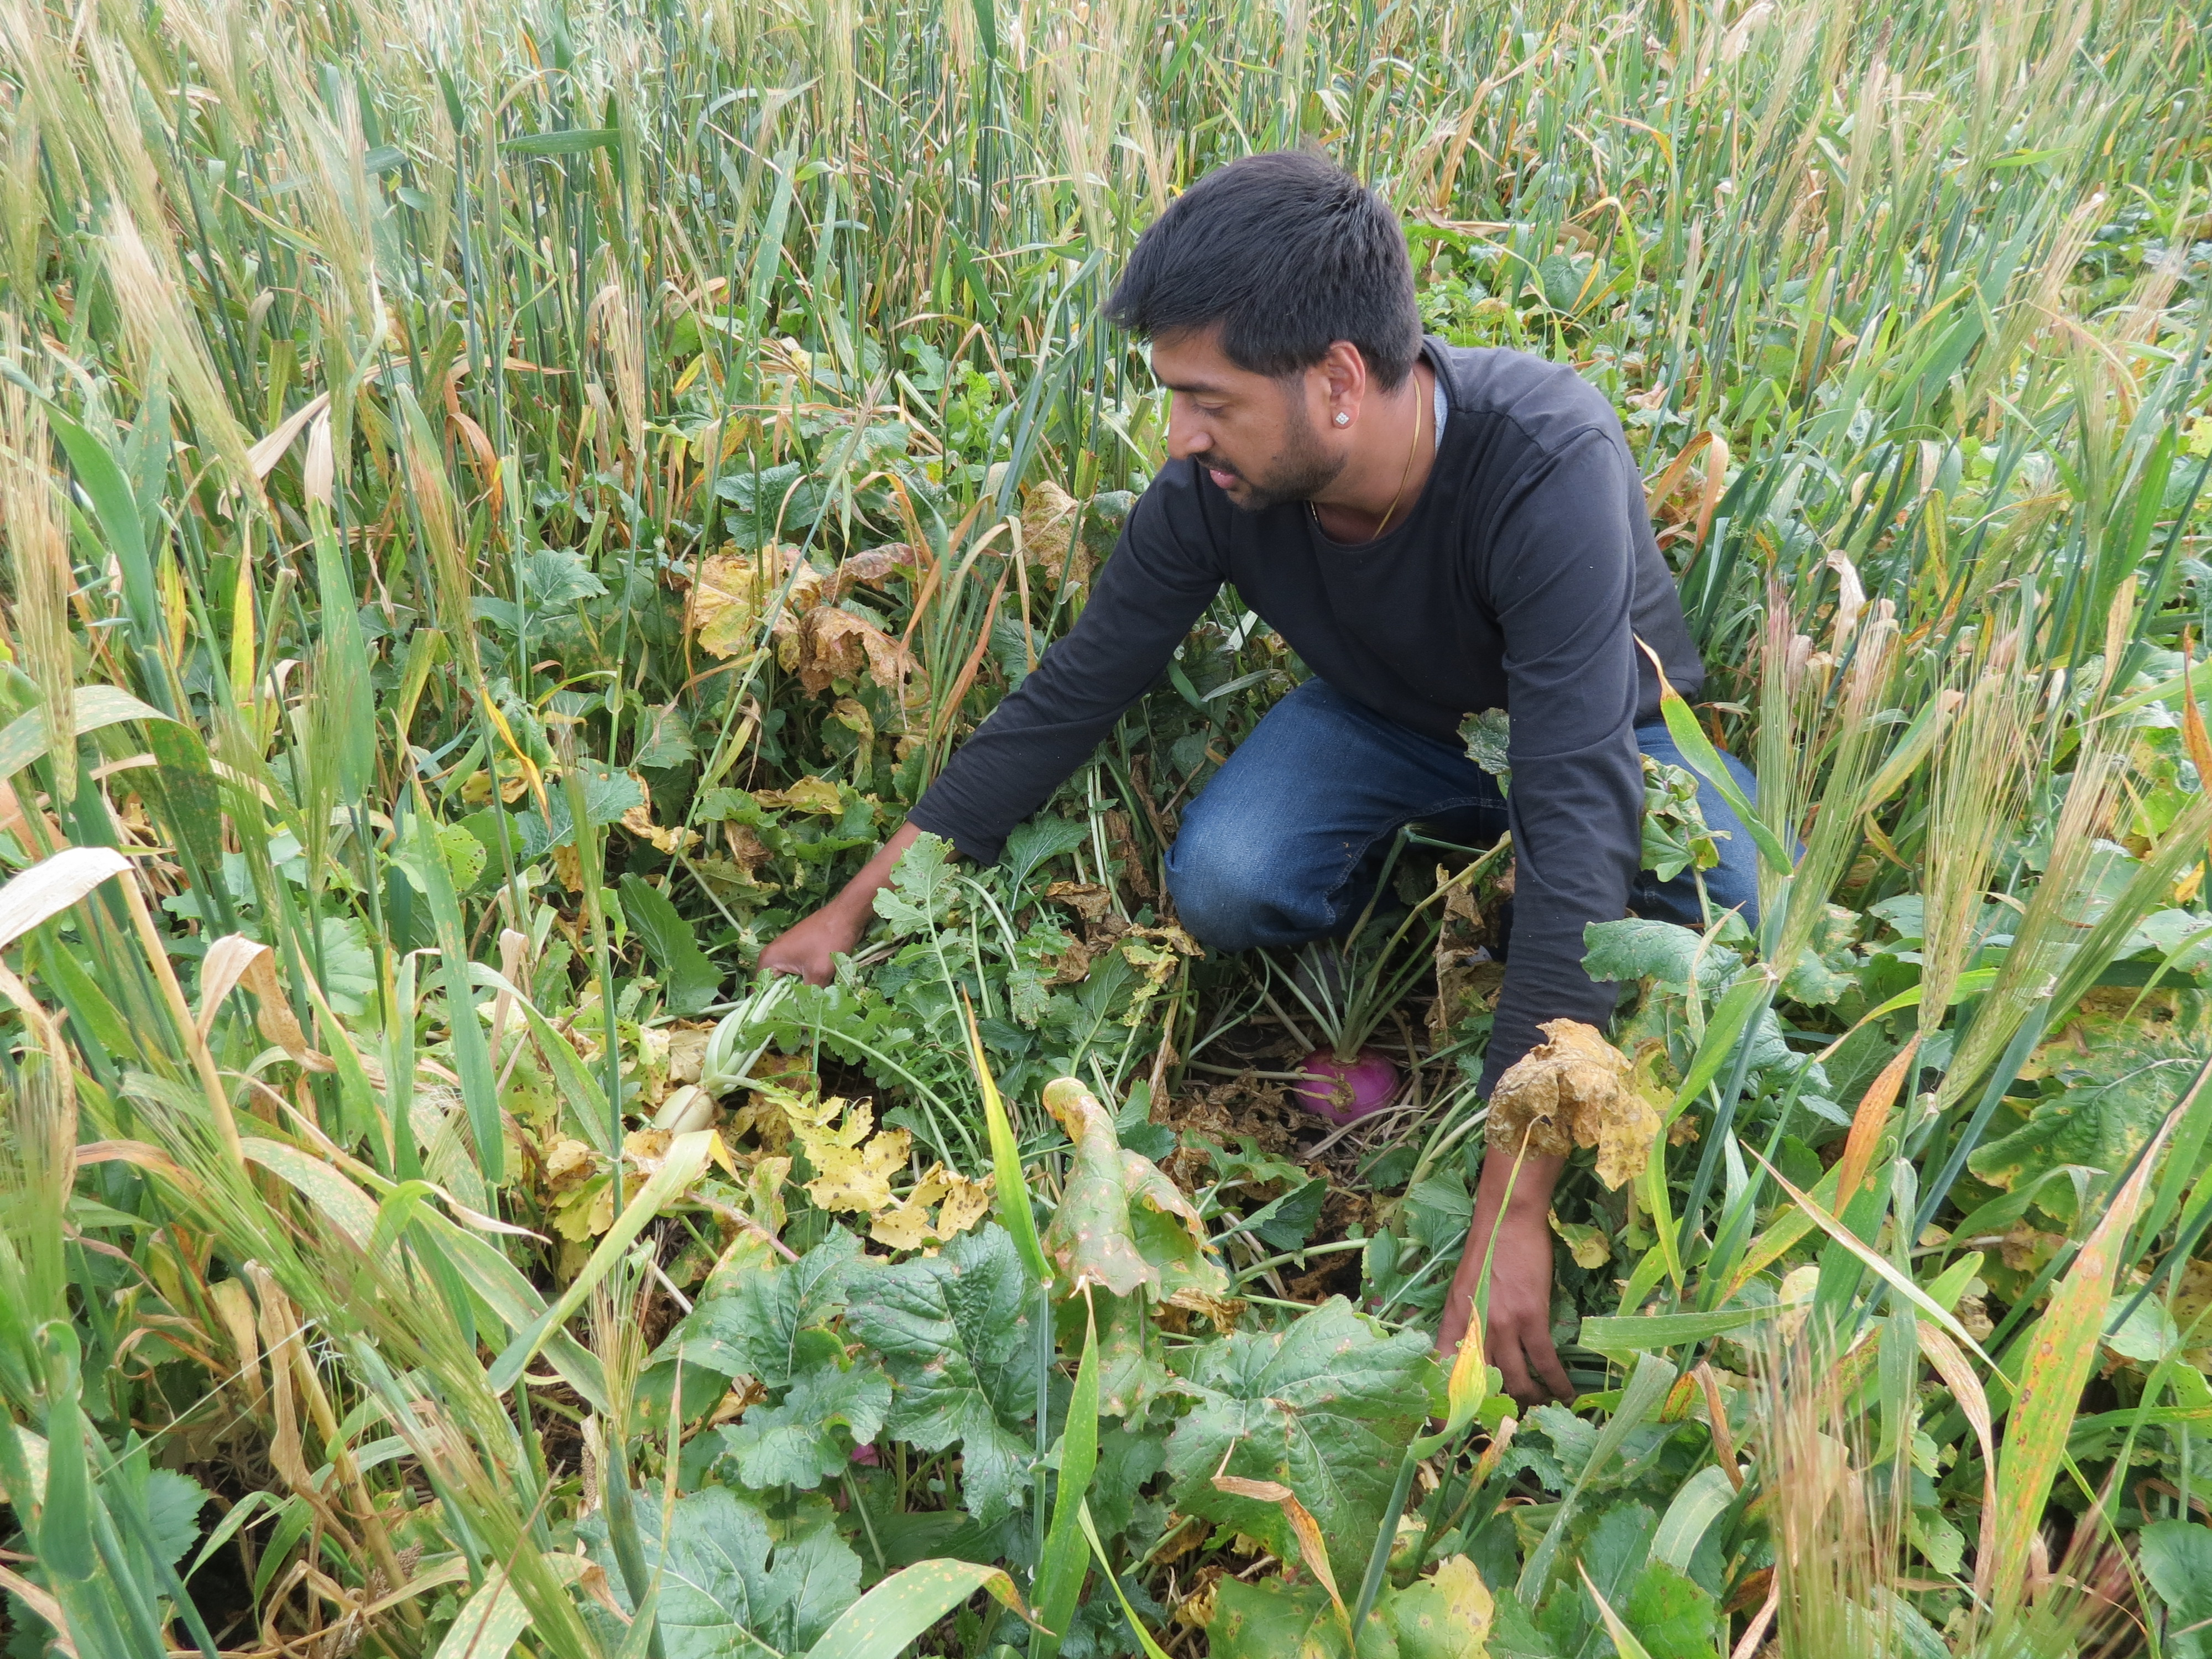 Fall Cover Crops For Livestock Grazing May Improve Soil